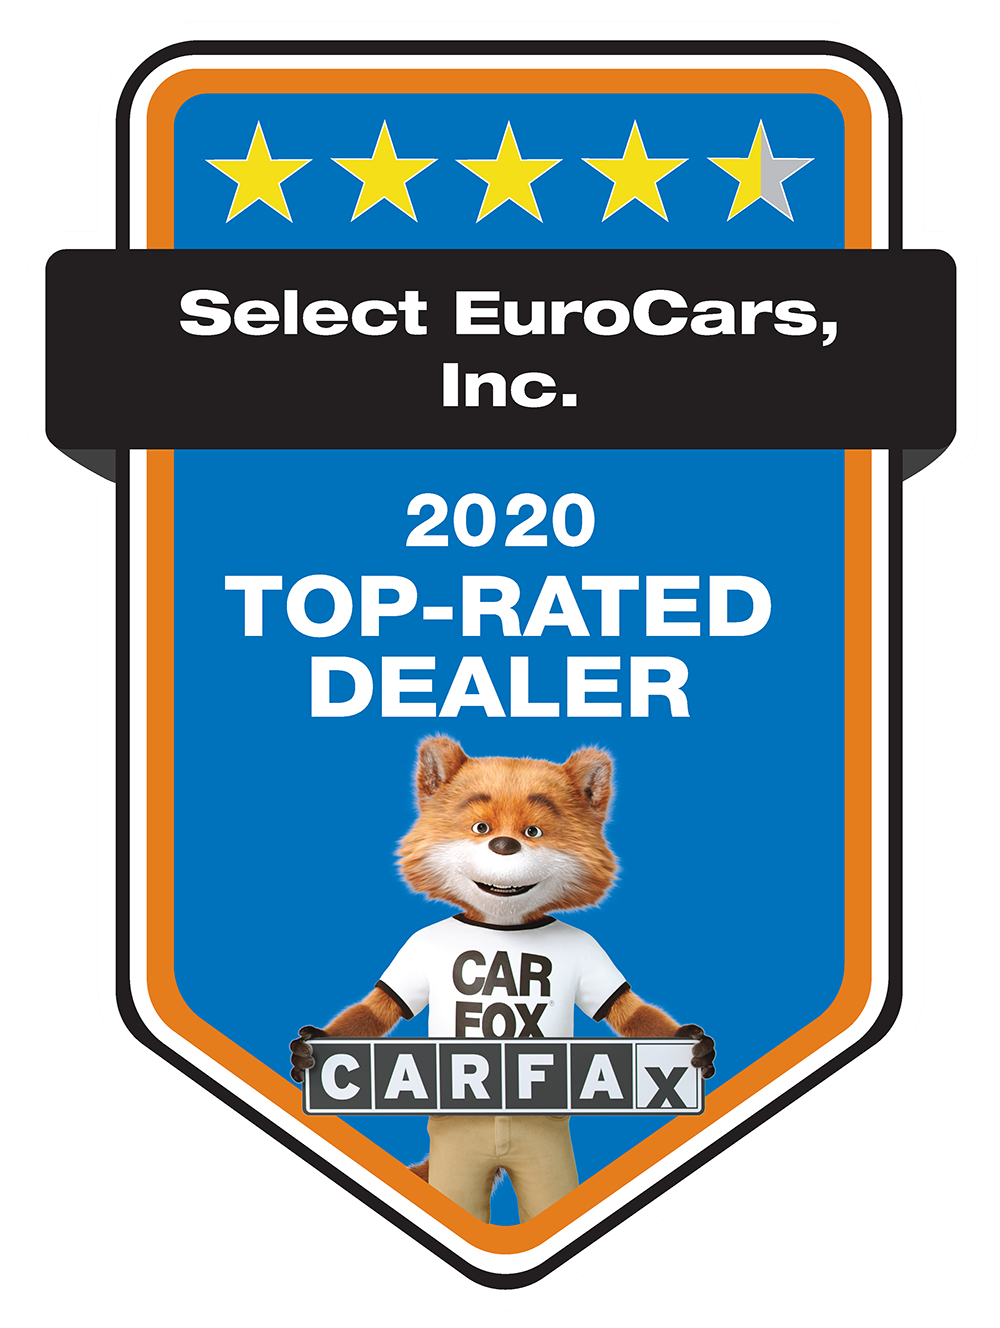 Select EuroCars, Inc. is a CARFAX Top Rated Dealer